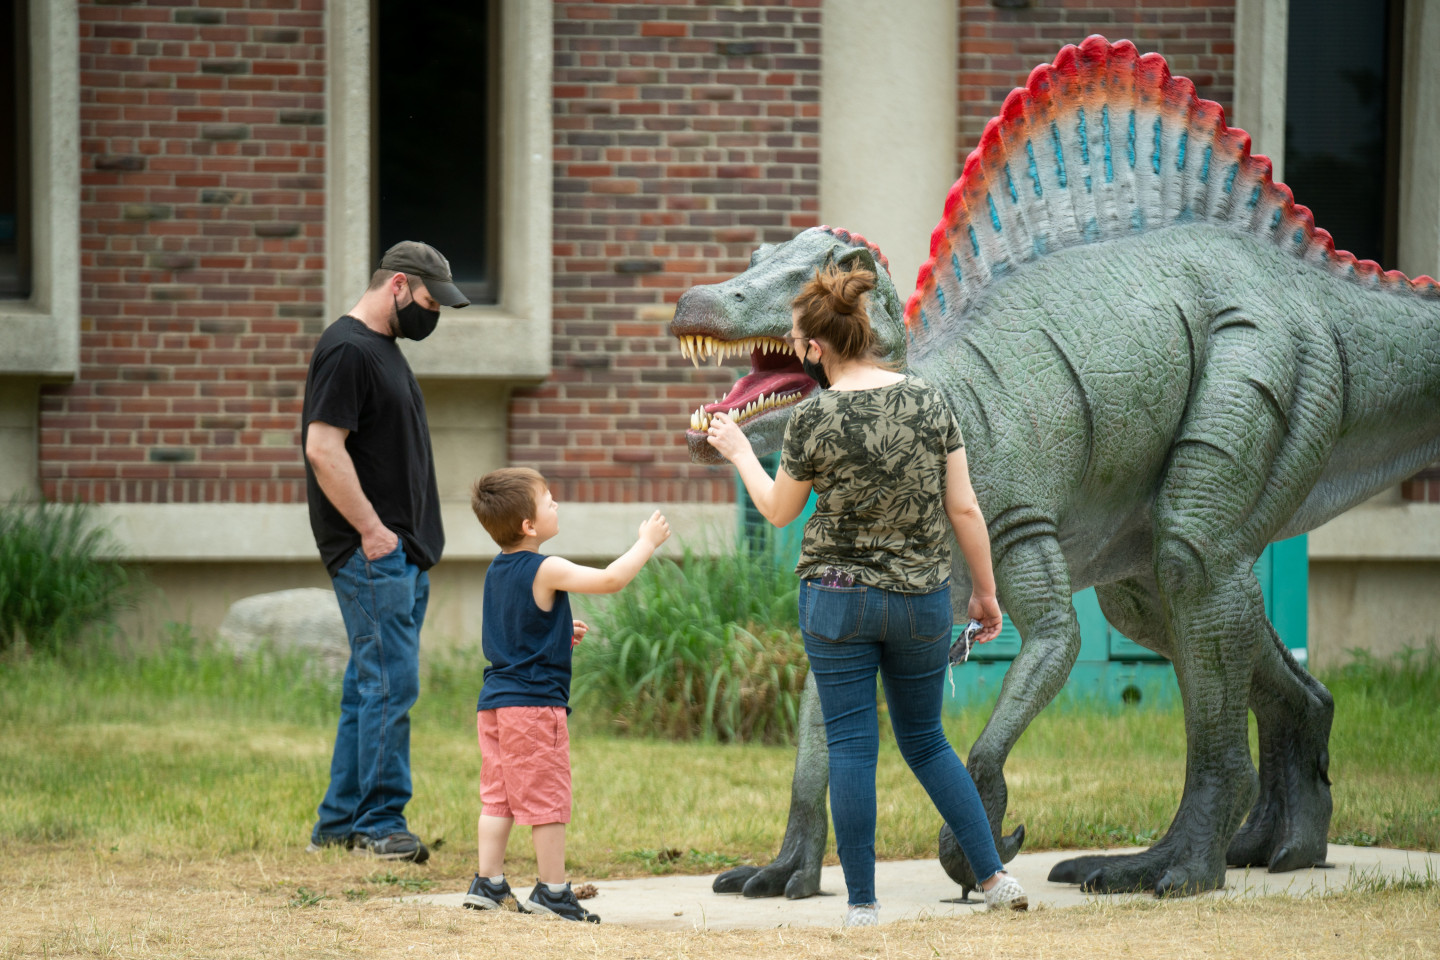 A family looks at the spinosaurus statue.